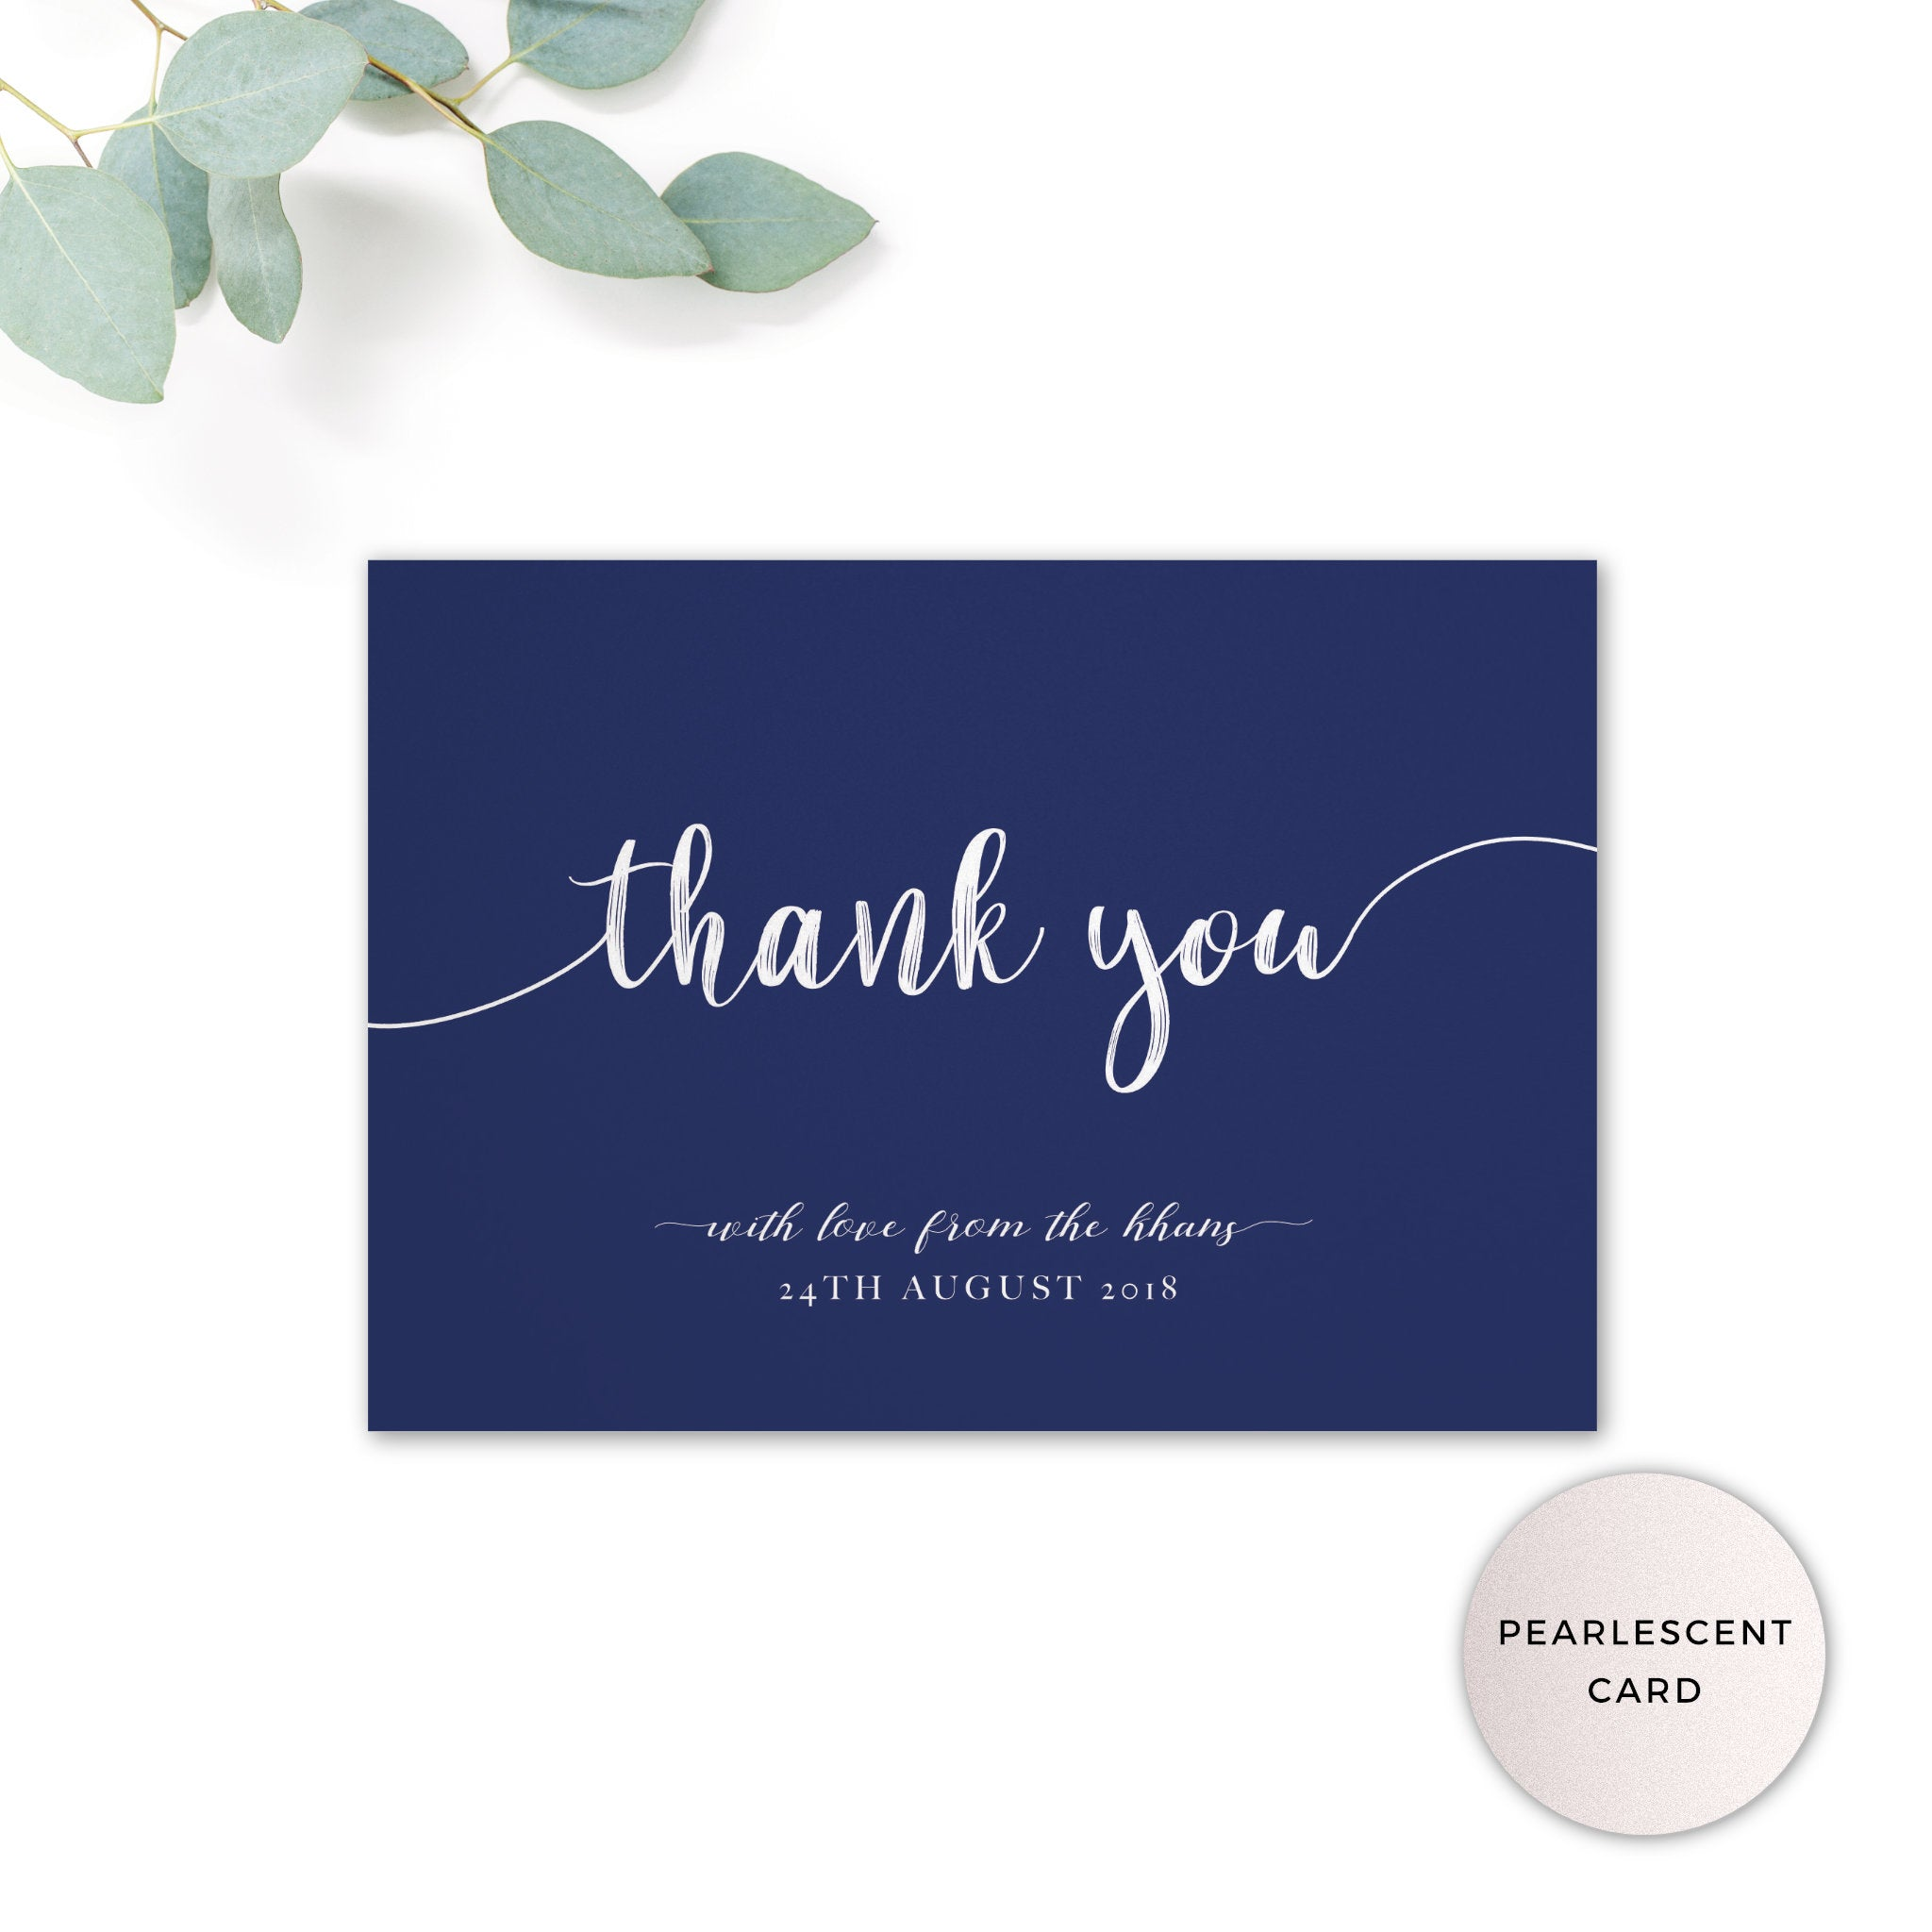 Hampton Navy Blue personalised thank you card printed on pearlescent card